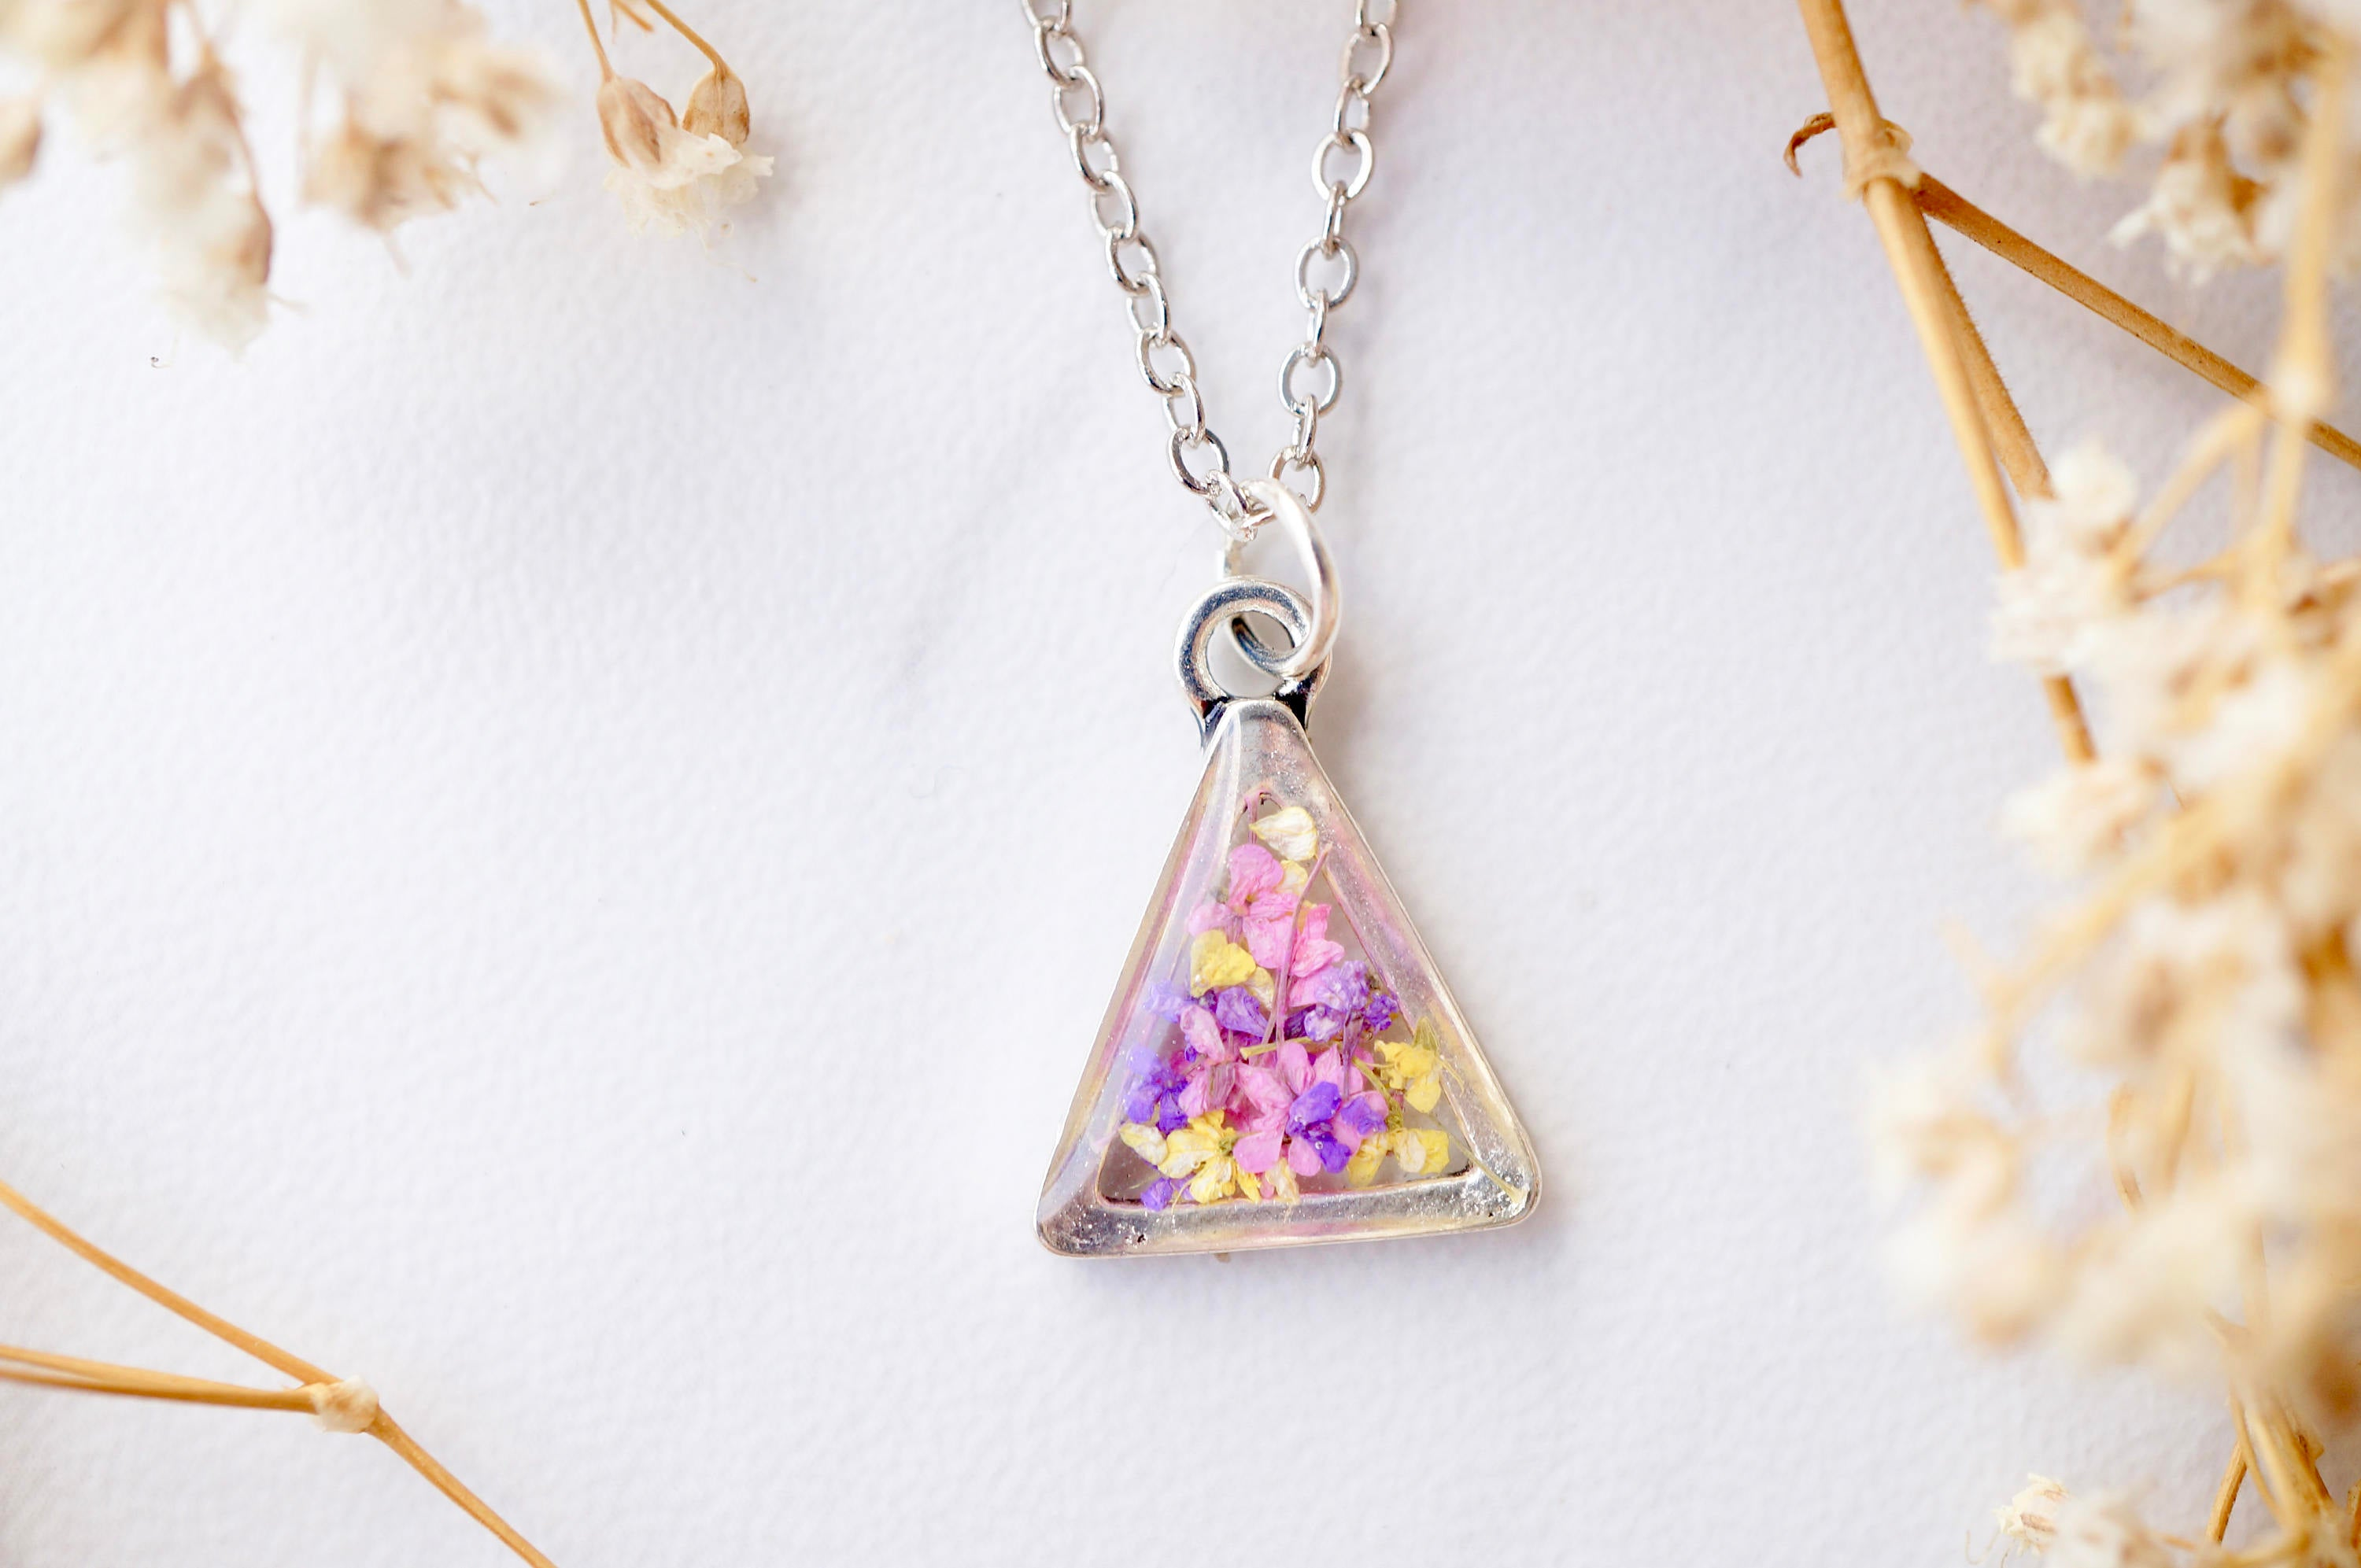 Light Pink Geometric Boho Orange Silver Triangle Necklace with Real Pressed Flowers in Bright Pink and Blue